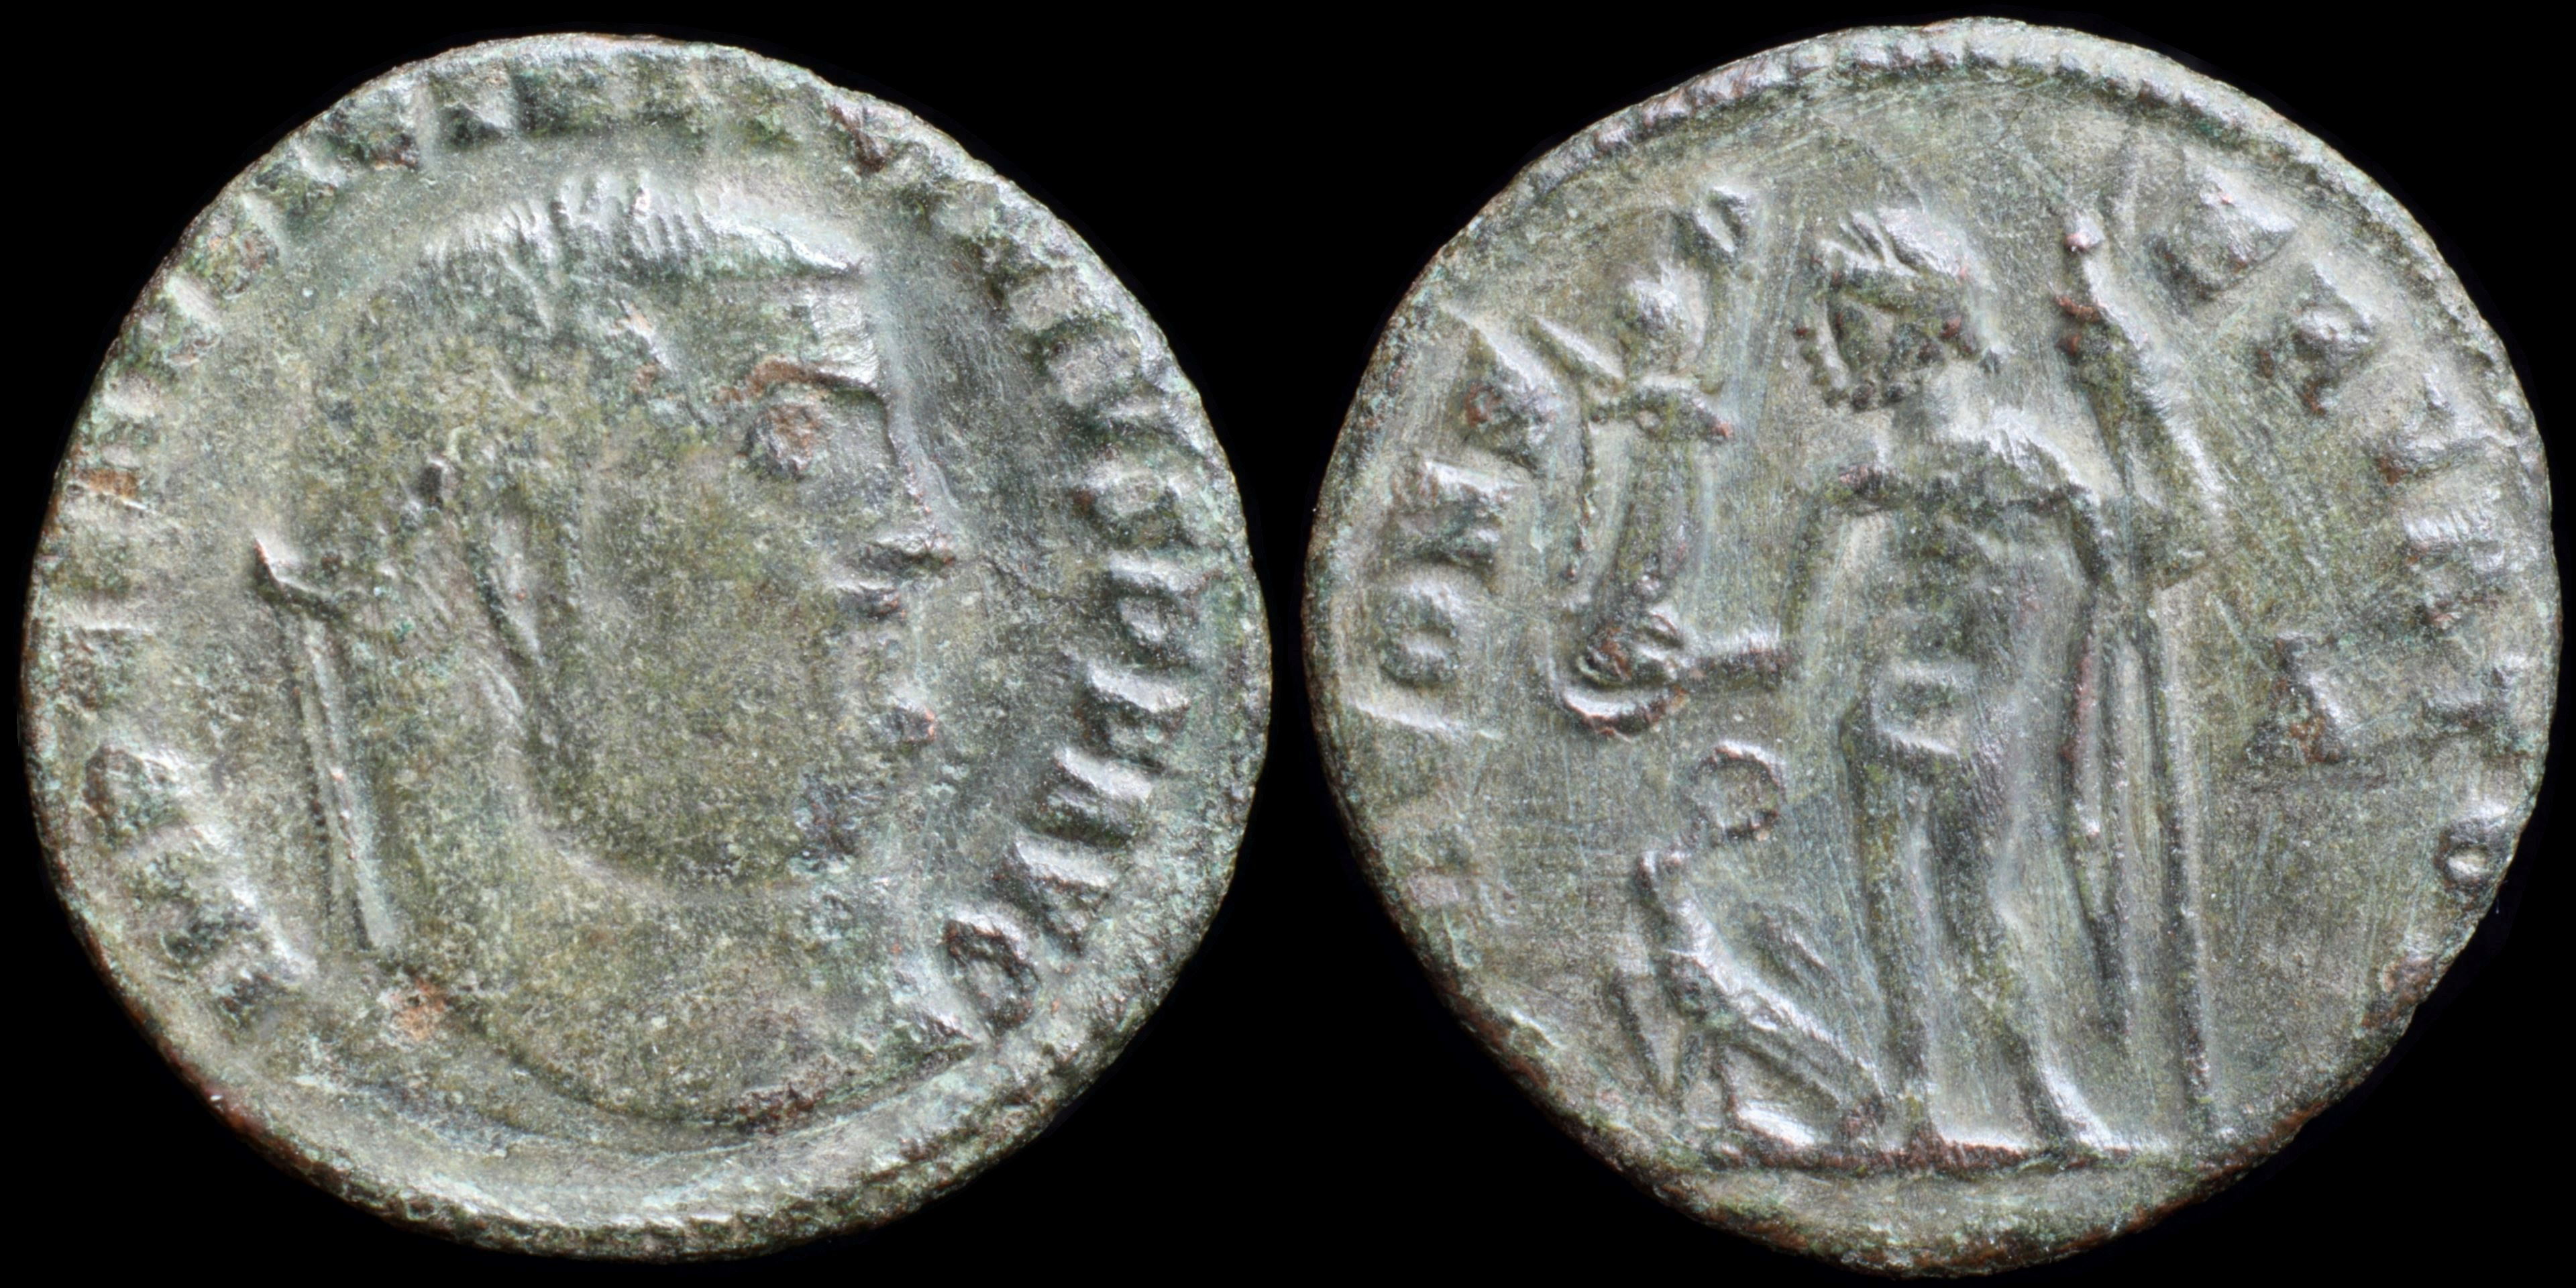 /Files/Images/Coinsite/CoinDB/319_Licinius_Jupiter_Cyzicus.jpg